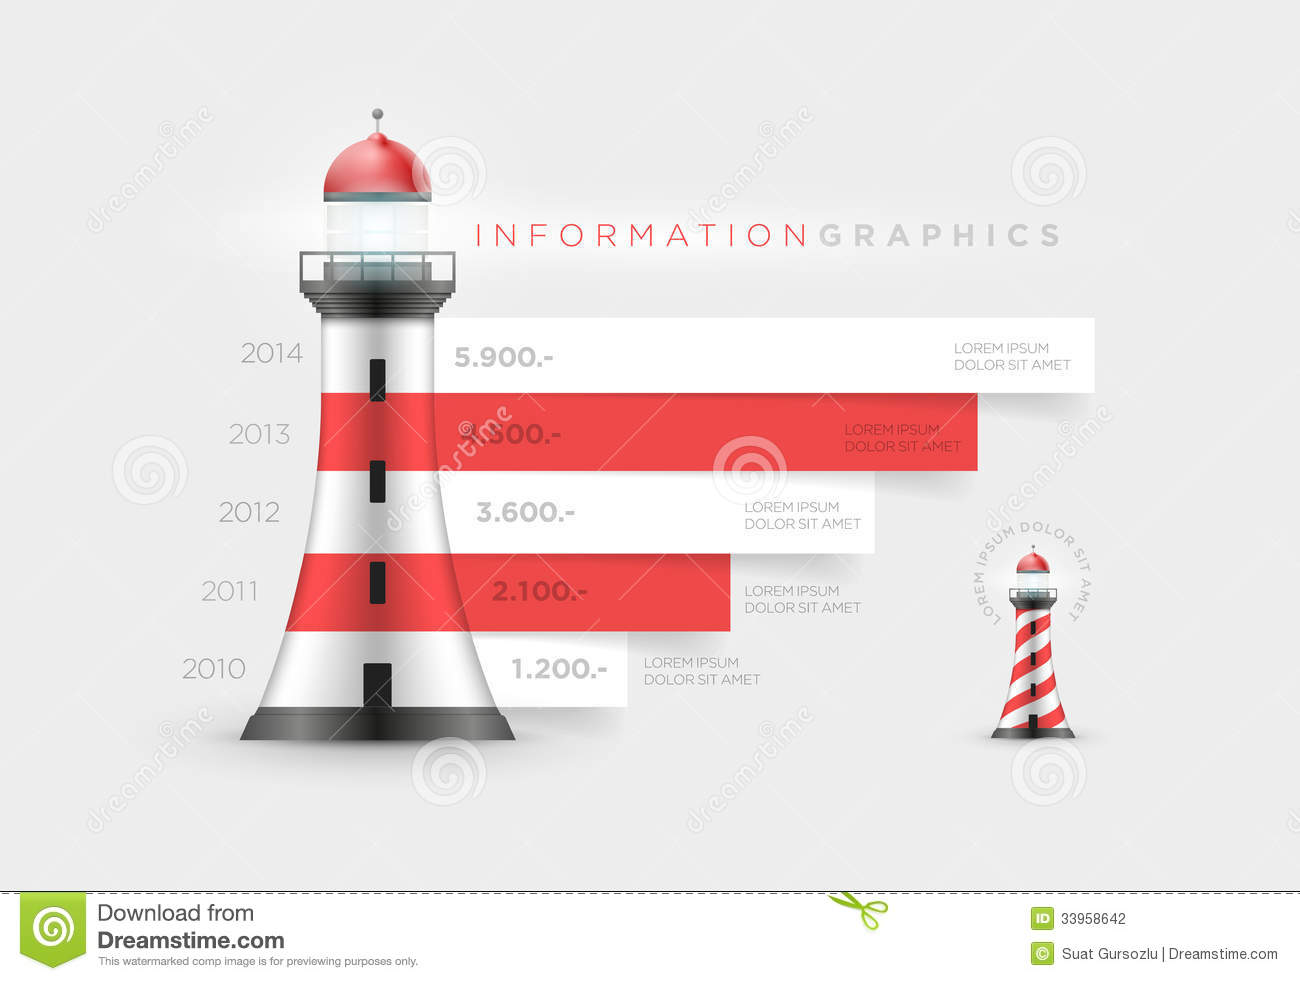 Infographics template with red white lighthouse stock vector lighthouse infographic stock photography pronofoot35fo Images